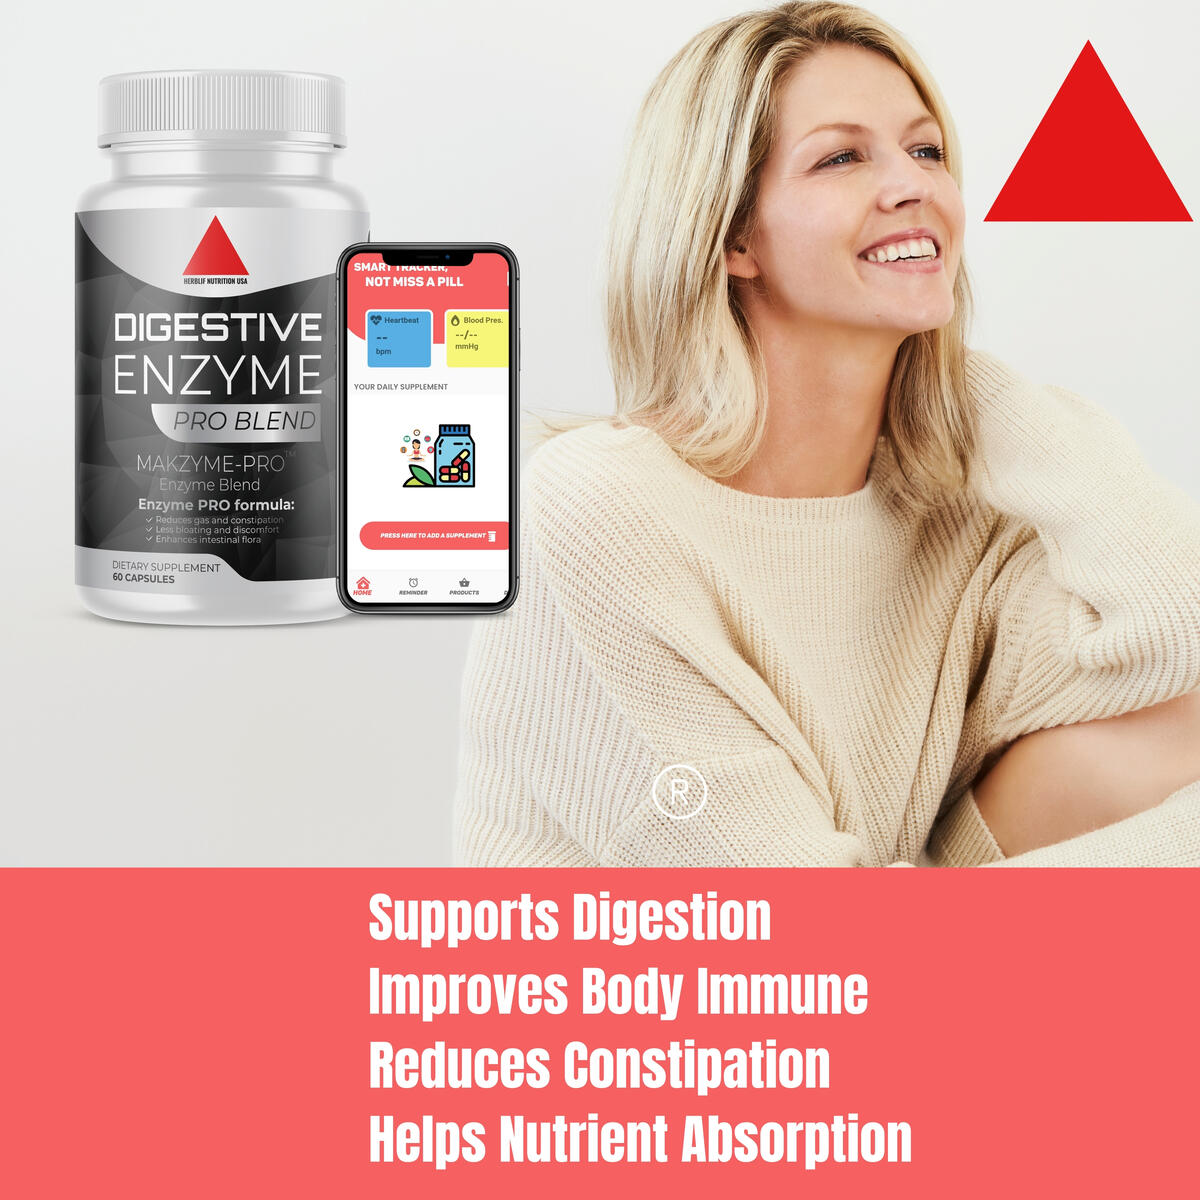 Digestive Enzymes with Probiotics and Prebiotics, Daily Digestive Support Supplement, Formulated for Gas, Bloating, Digestion & Occasional Constipation, Non-GMO - 60 Capsules